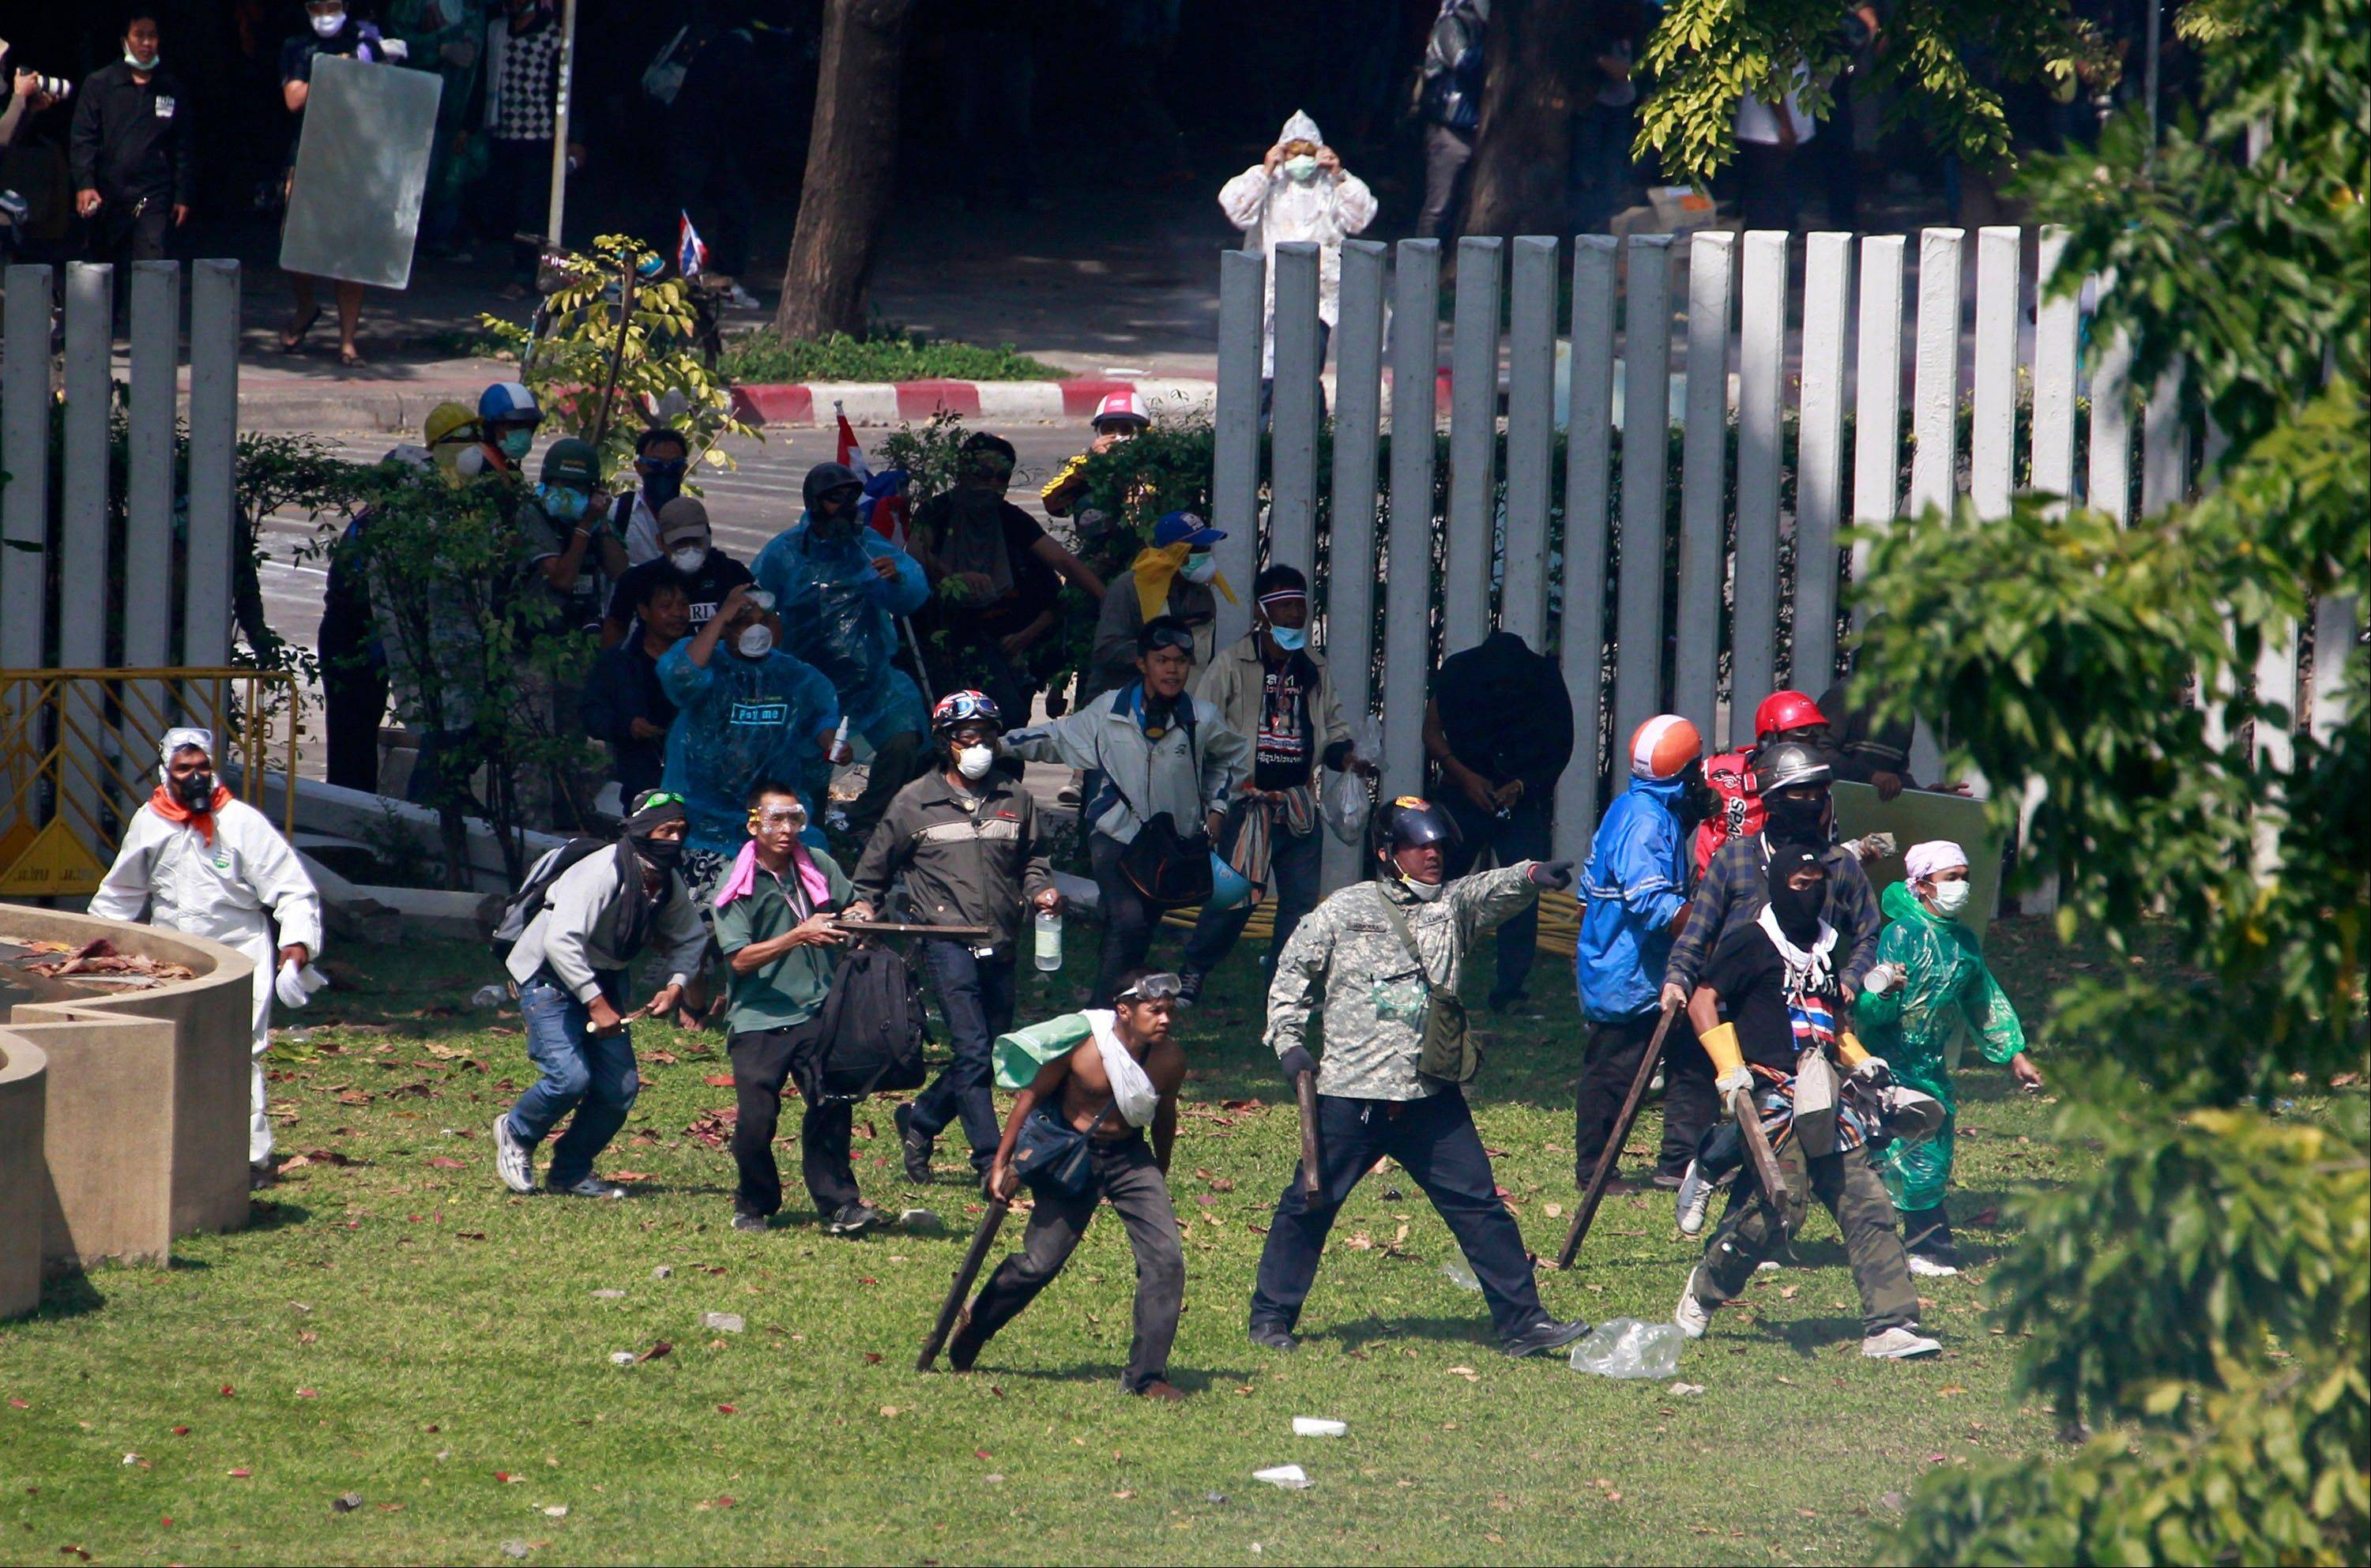 Thai anti-government protesters enter a sport stadium during a clash with riot policemen in Bangkok, Thailand, Thursday.